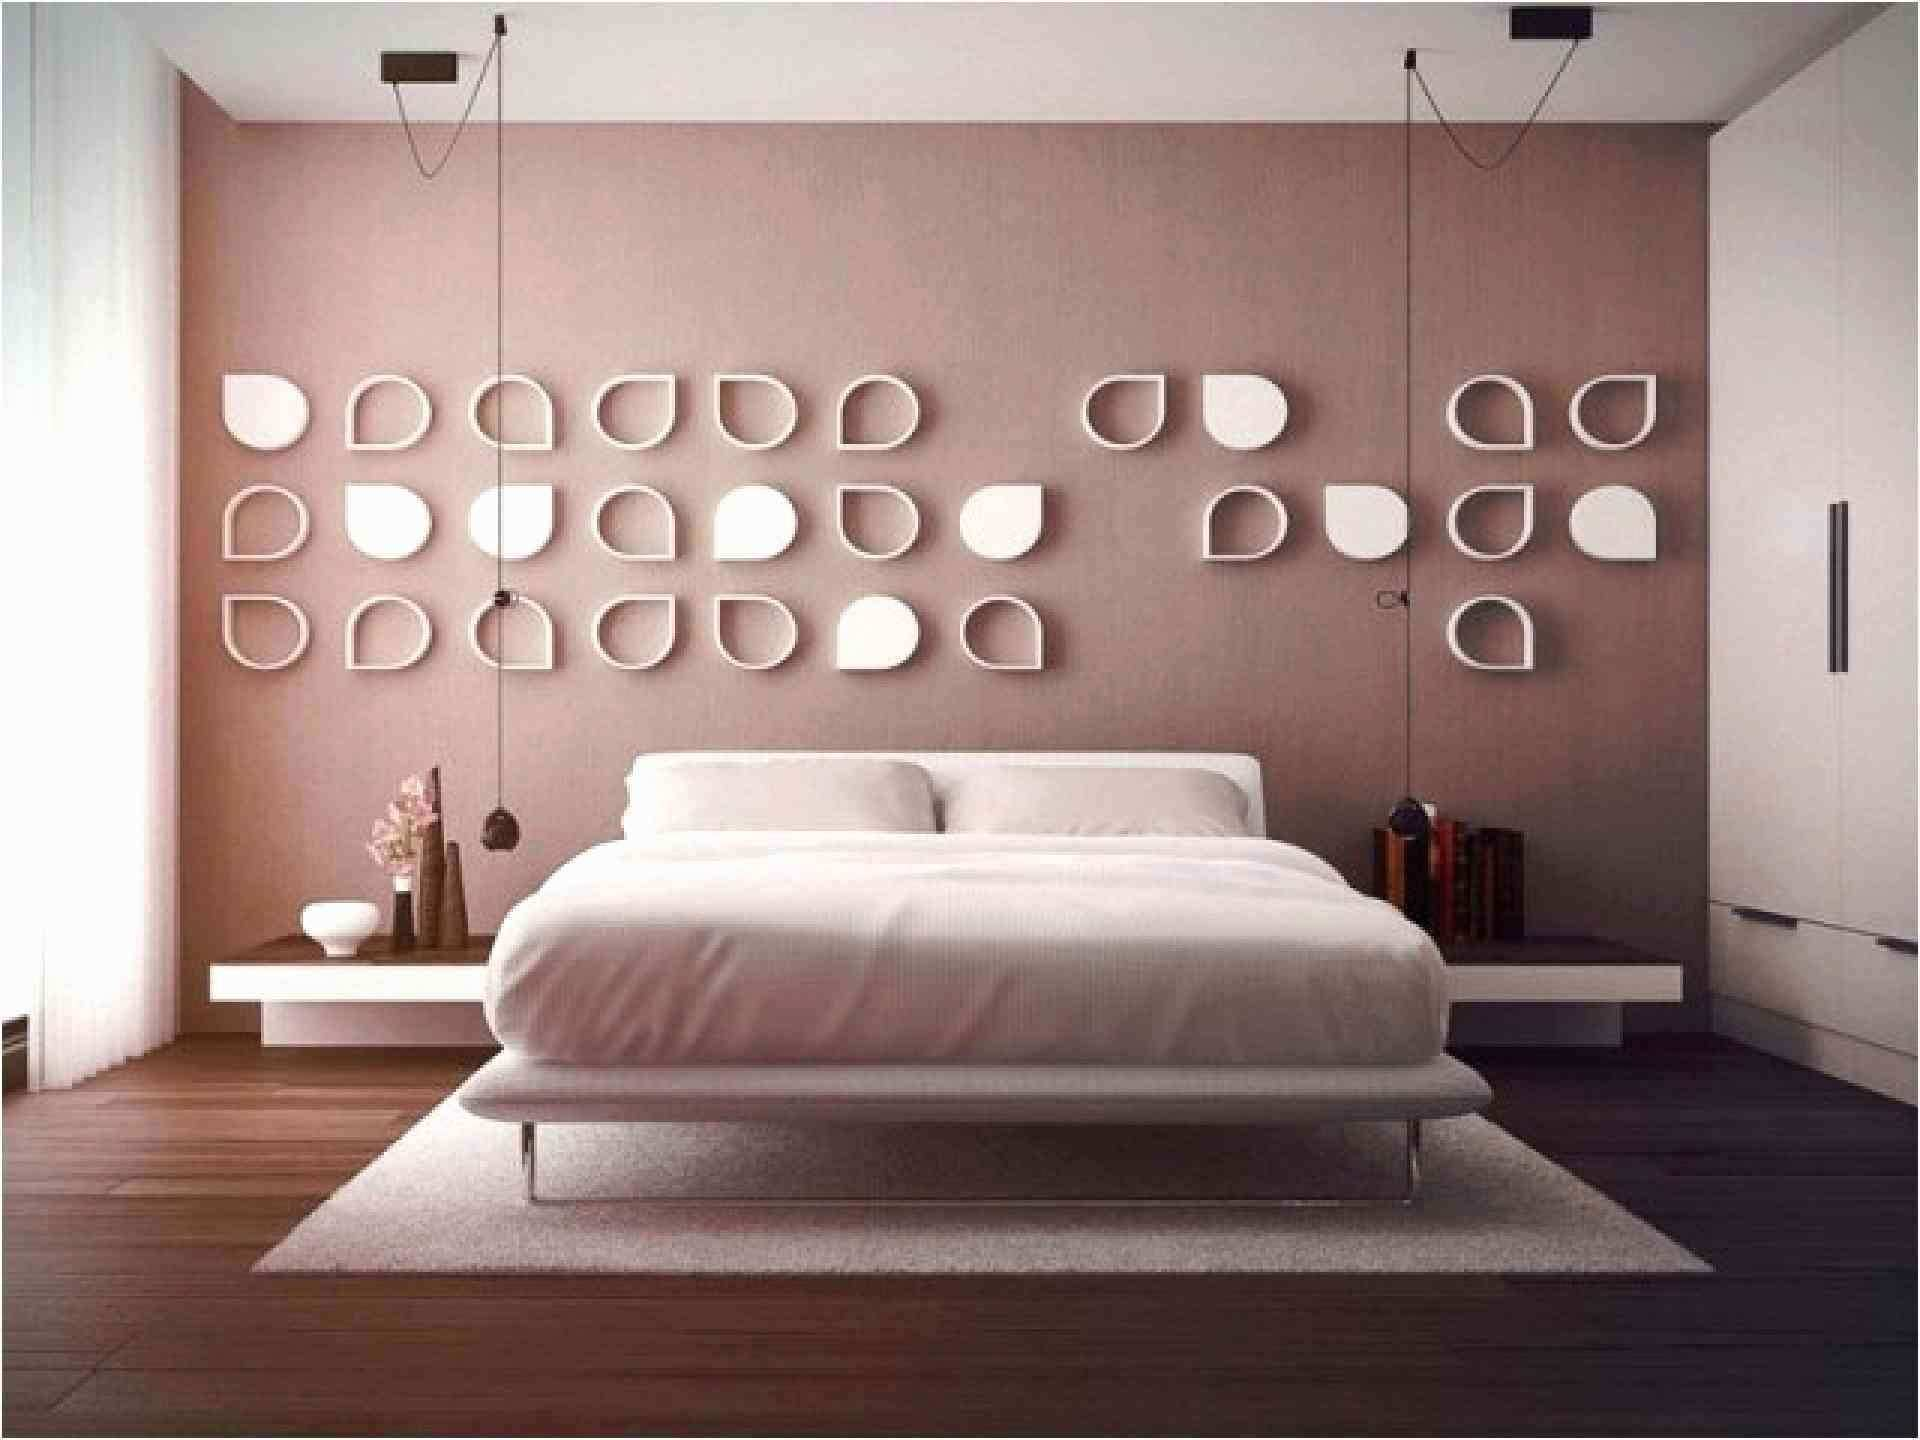 24 How to Decorate A Bedroom Wall Superb Bedroom Wall Decor Ideas